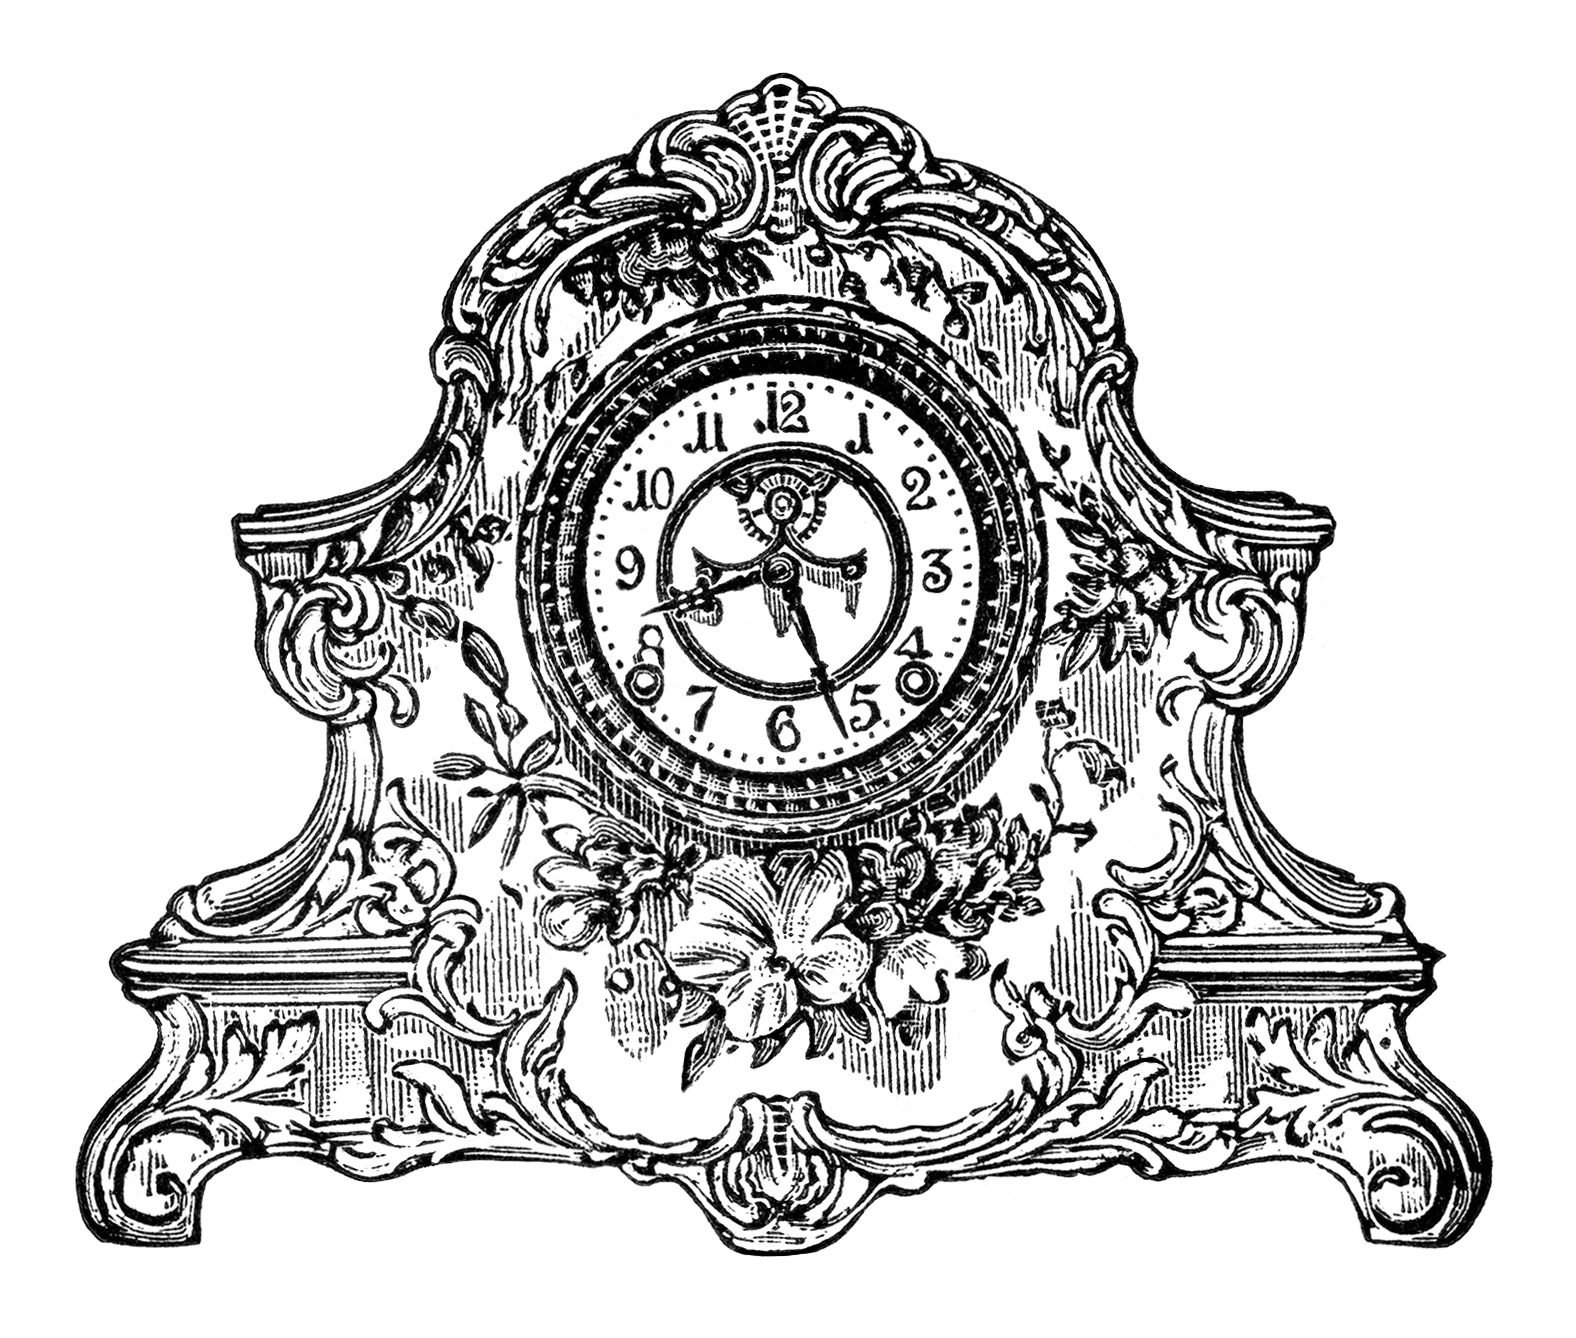 vintage clock clip art, black and white clipart, porcelain clock image, antique mantle clock, old fashioned clock illustration